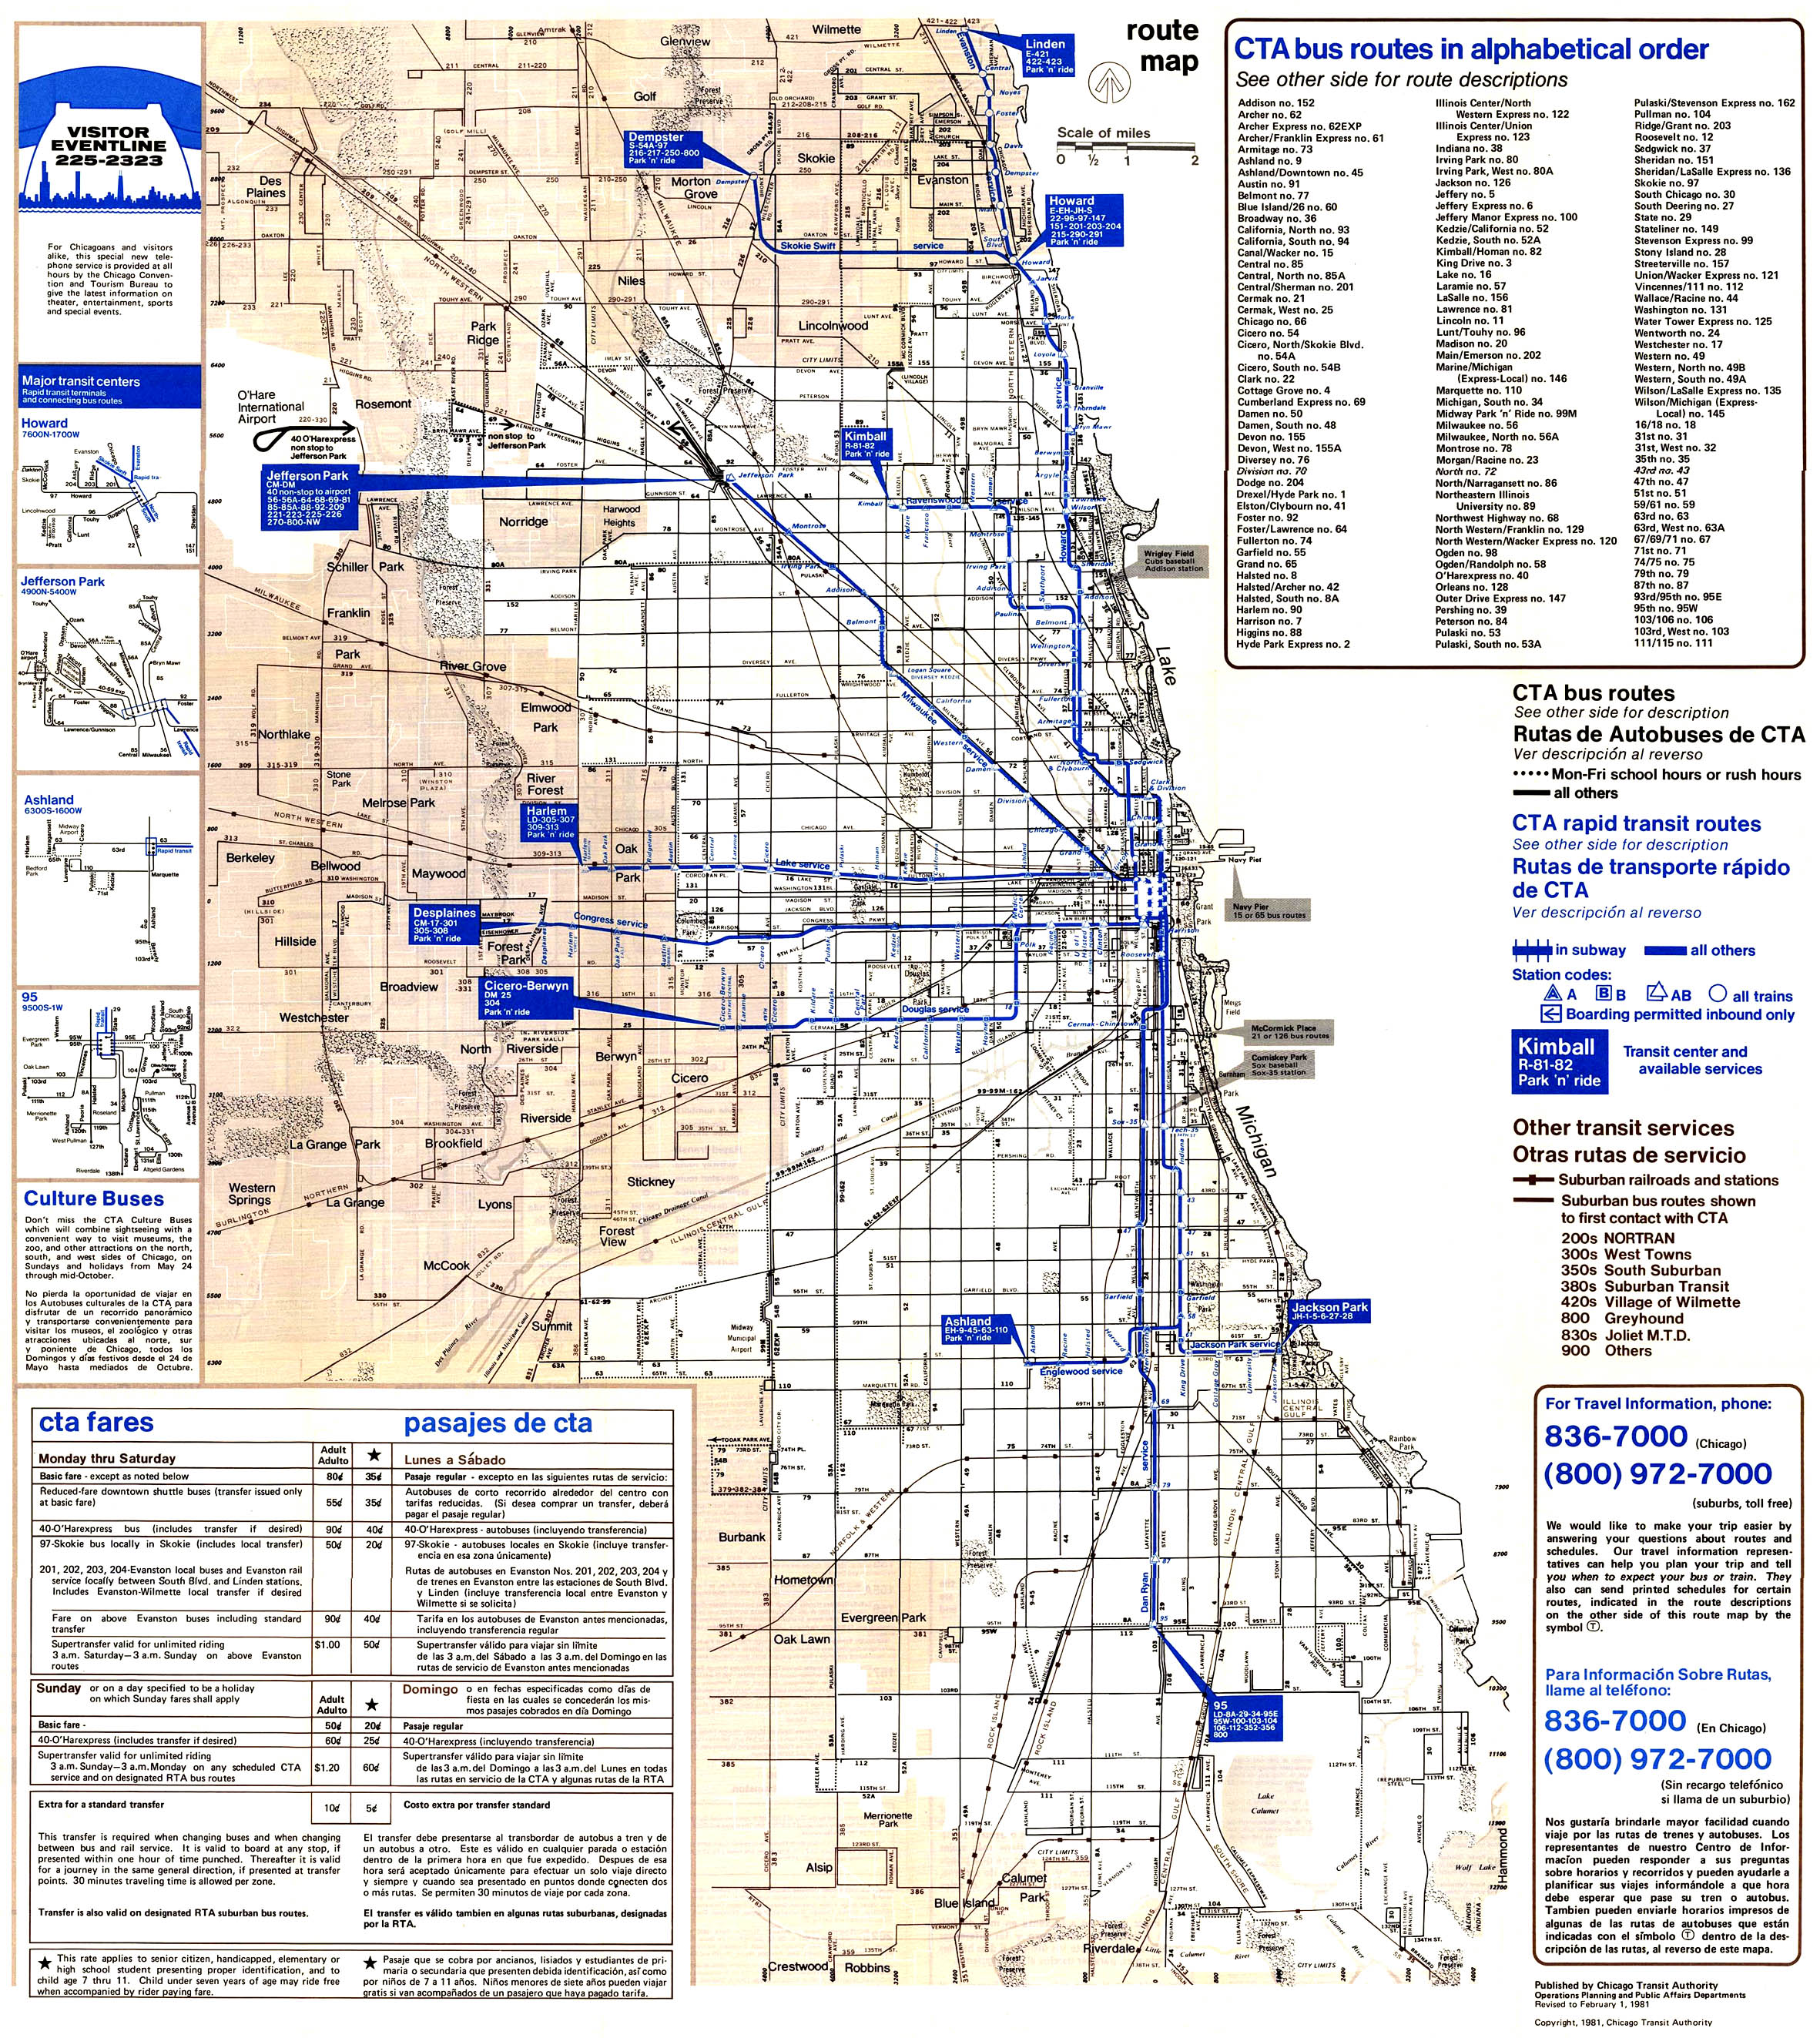 Chicago Lorg System Maps Route Maps - Chicago el map poster